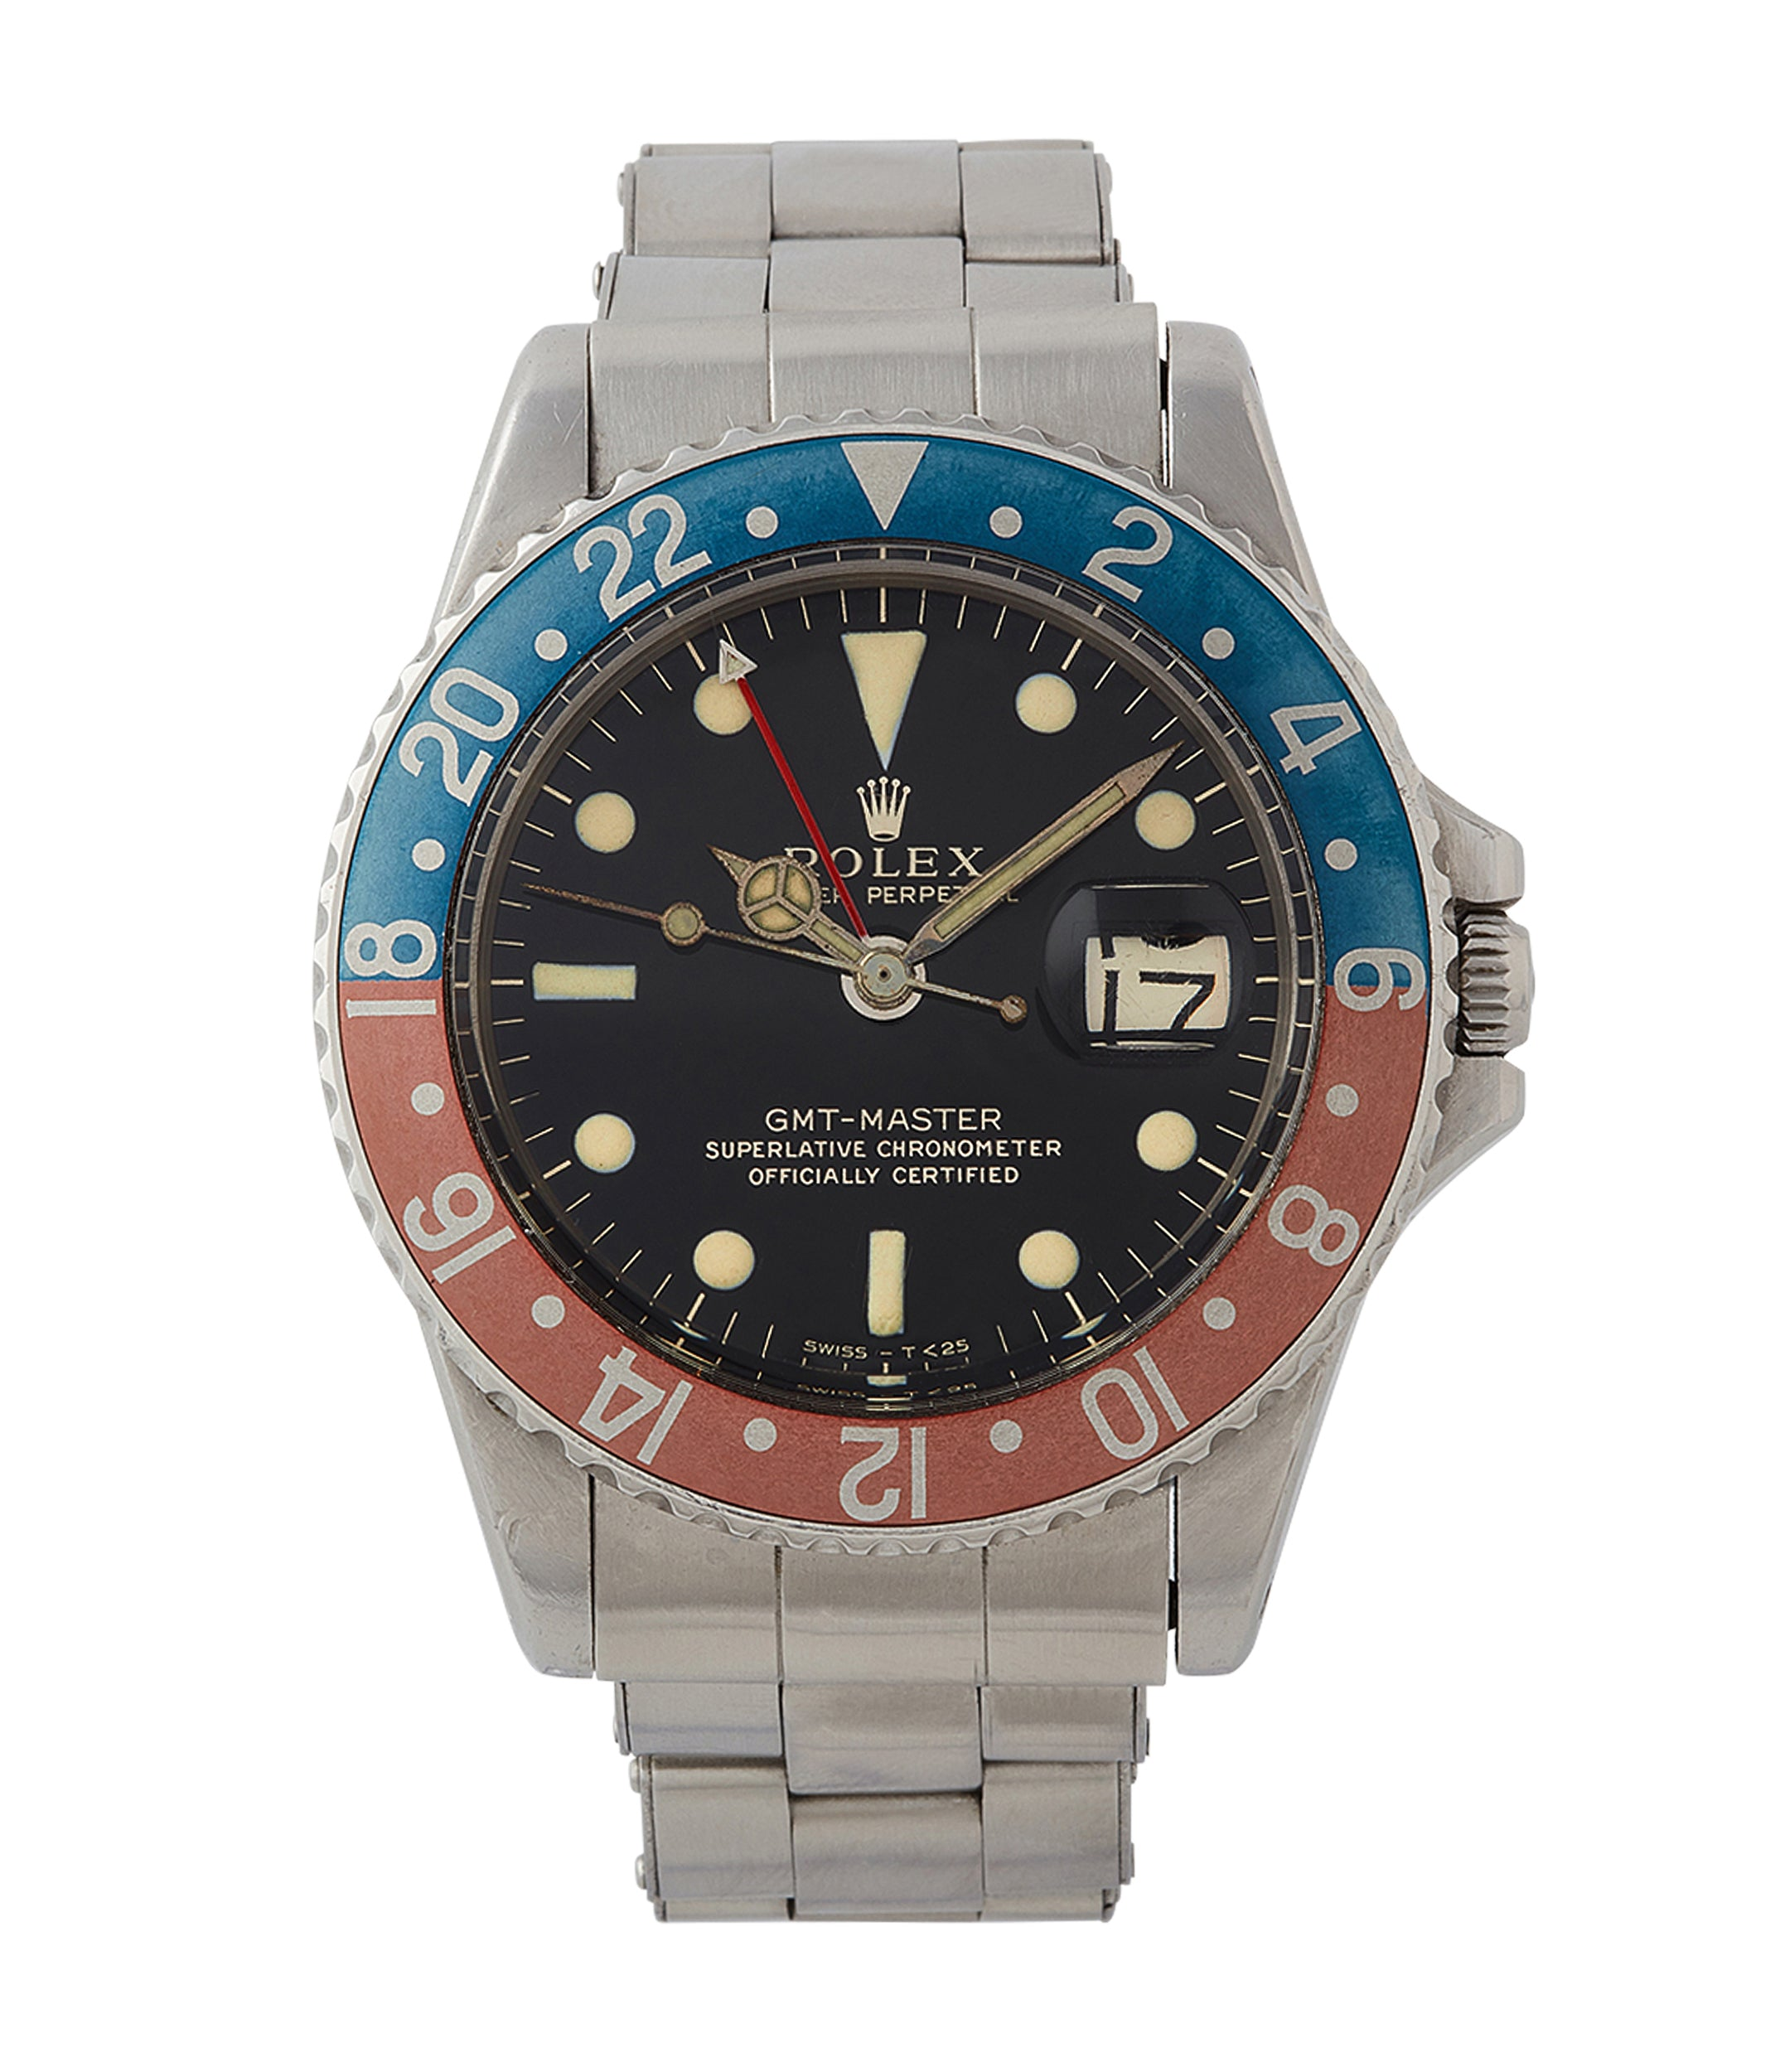 buy vintage Rolex GMT-Master 1675 Gilt dial full set vintage watch for sale online at A Collected Man London UK specialist of rare watches